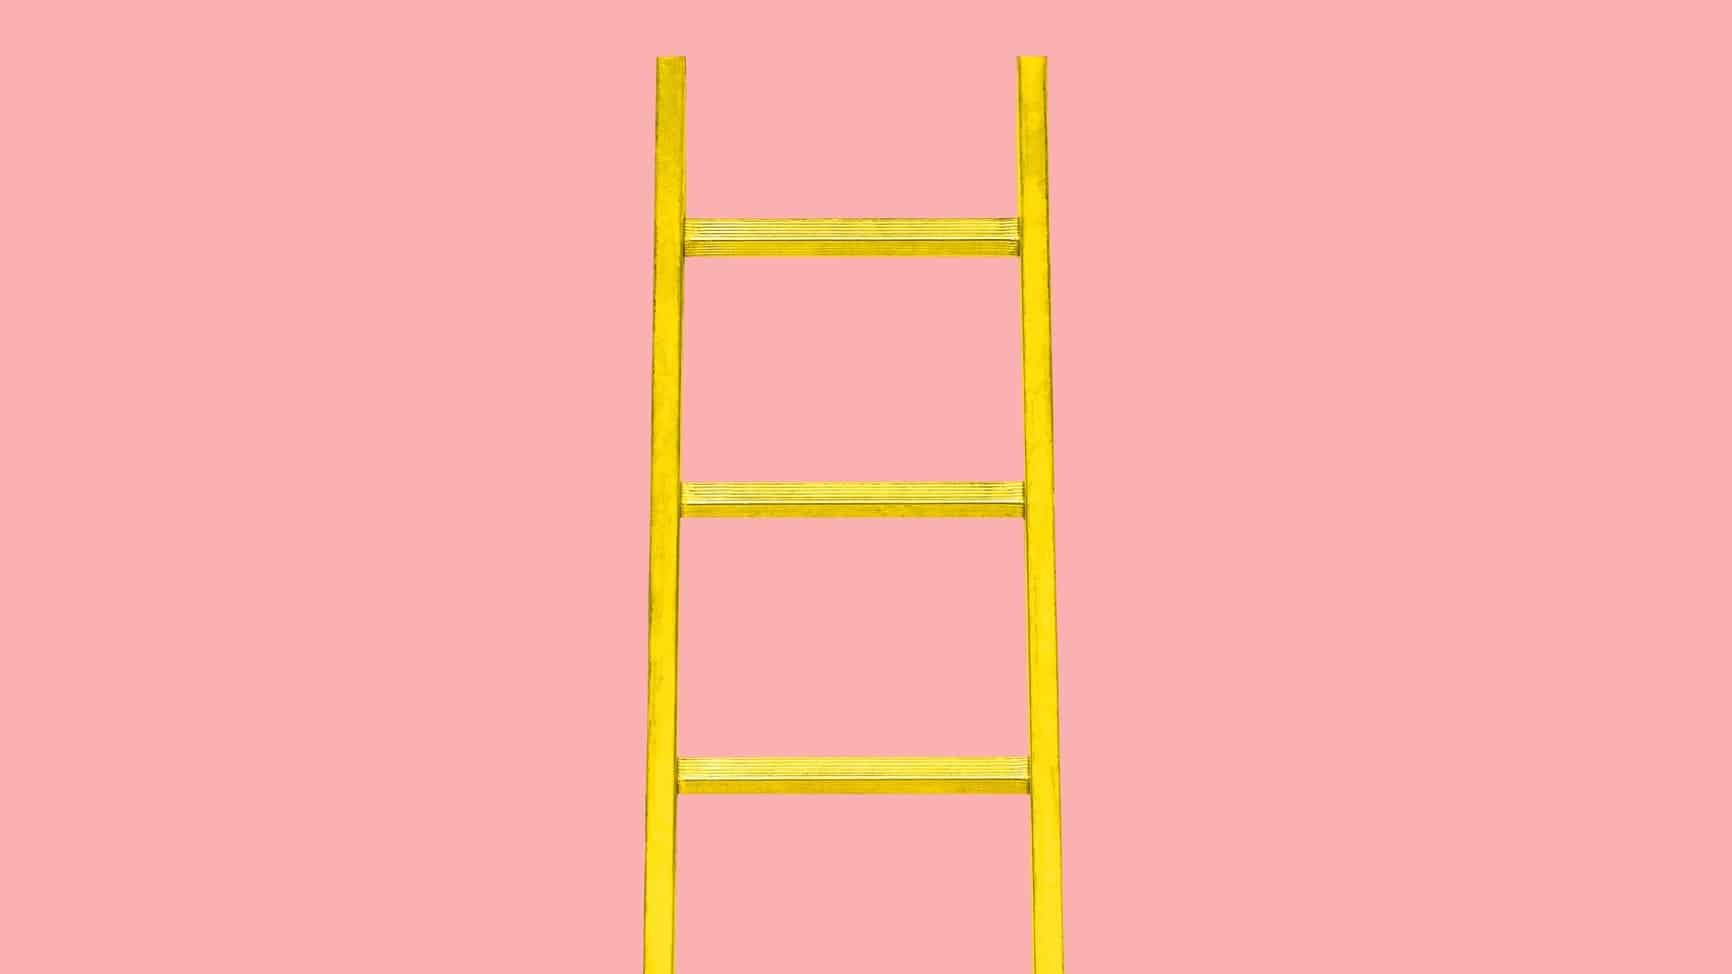 growth stocks represented by yellow ladder against pink background